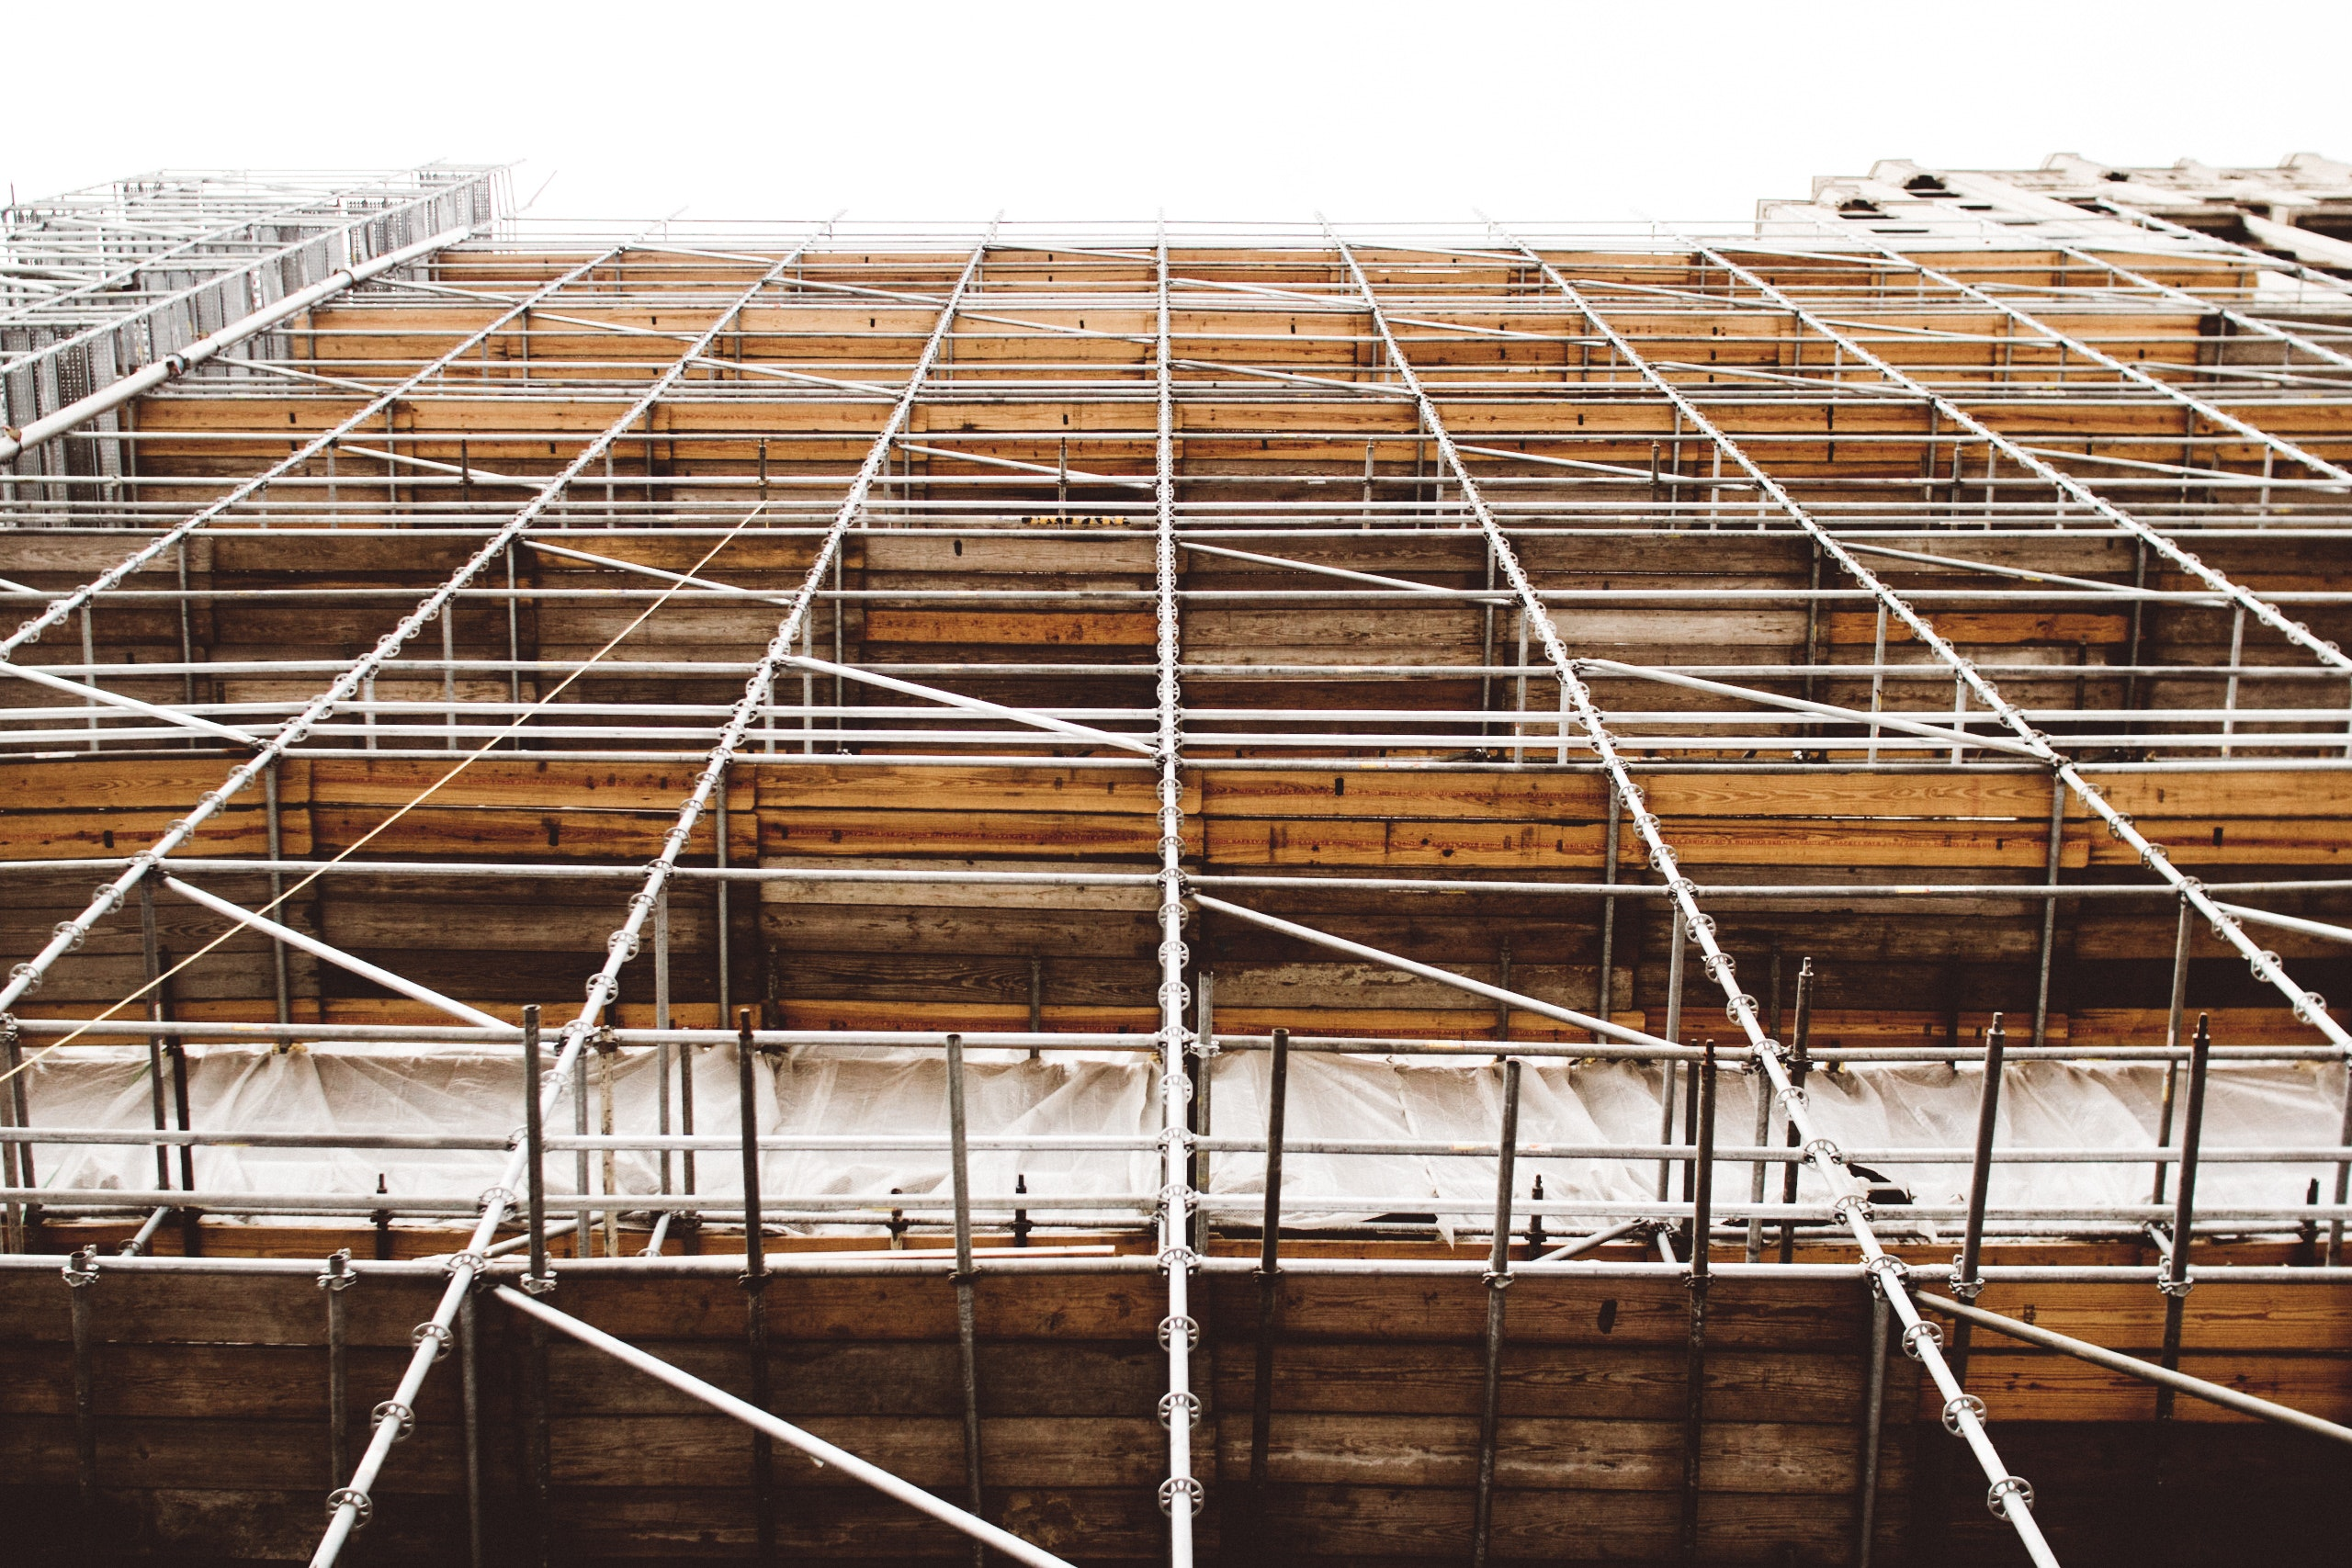 Scaffolding Inspections